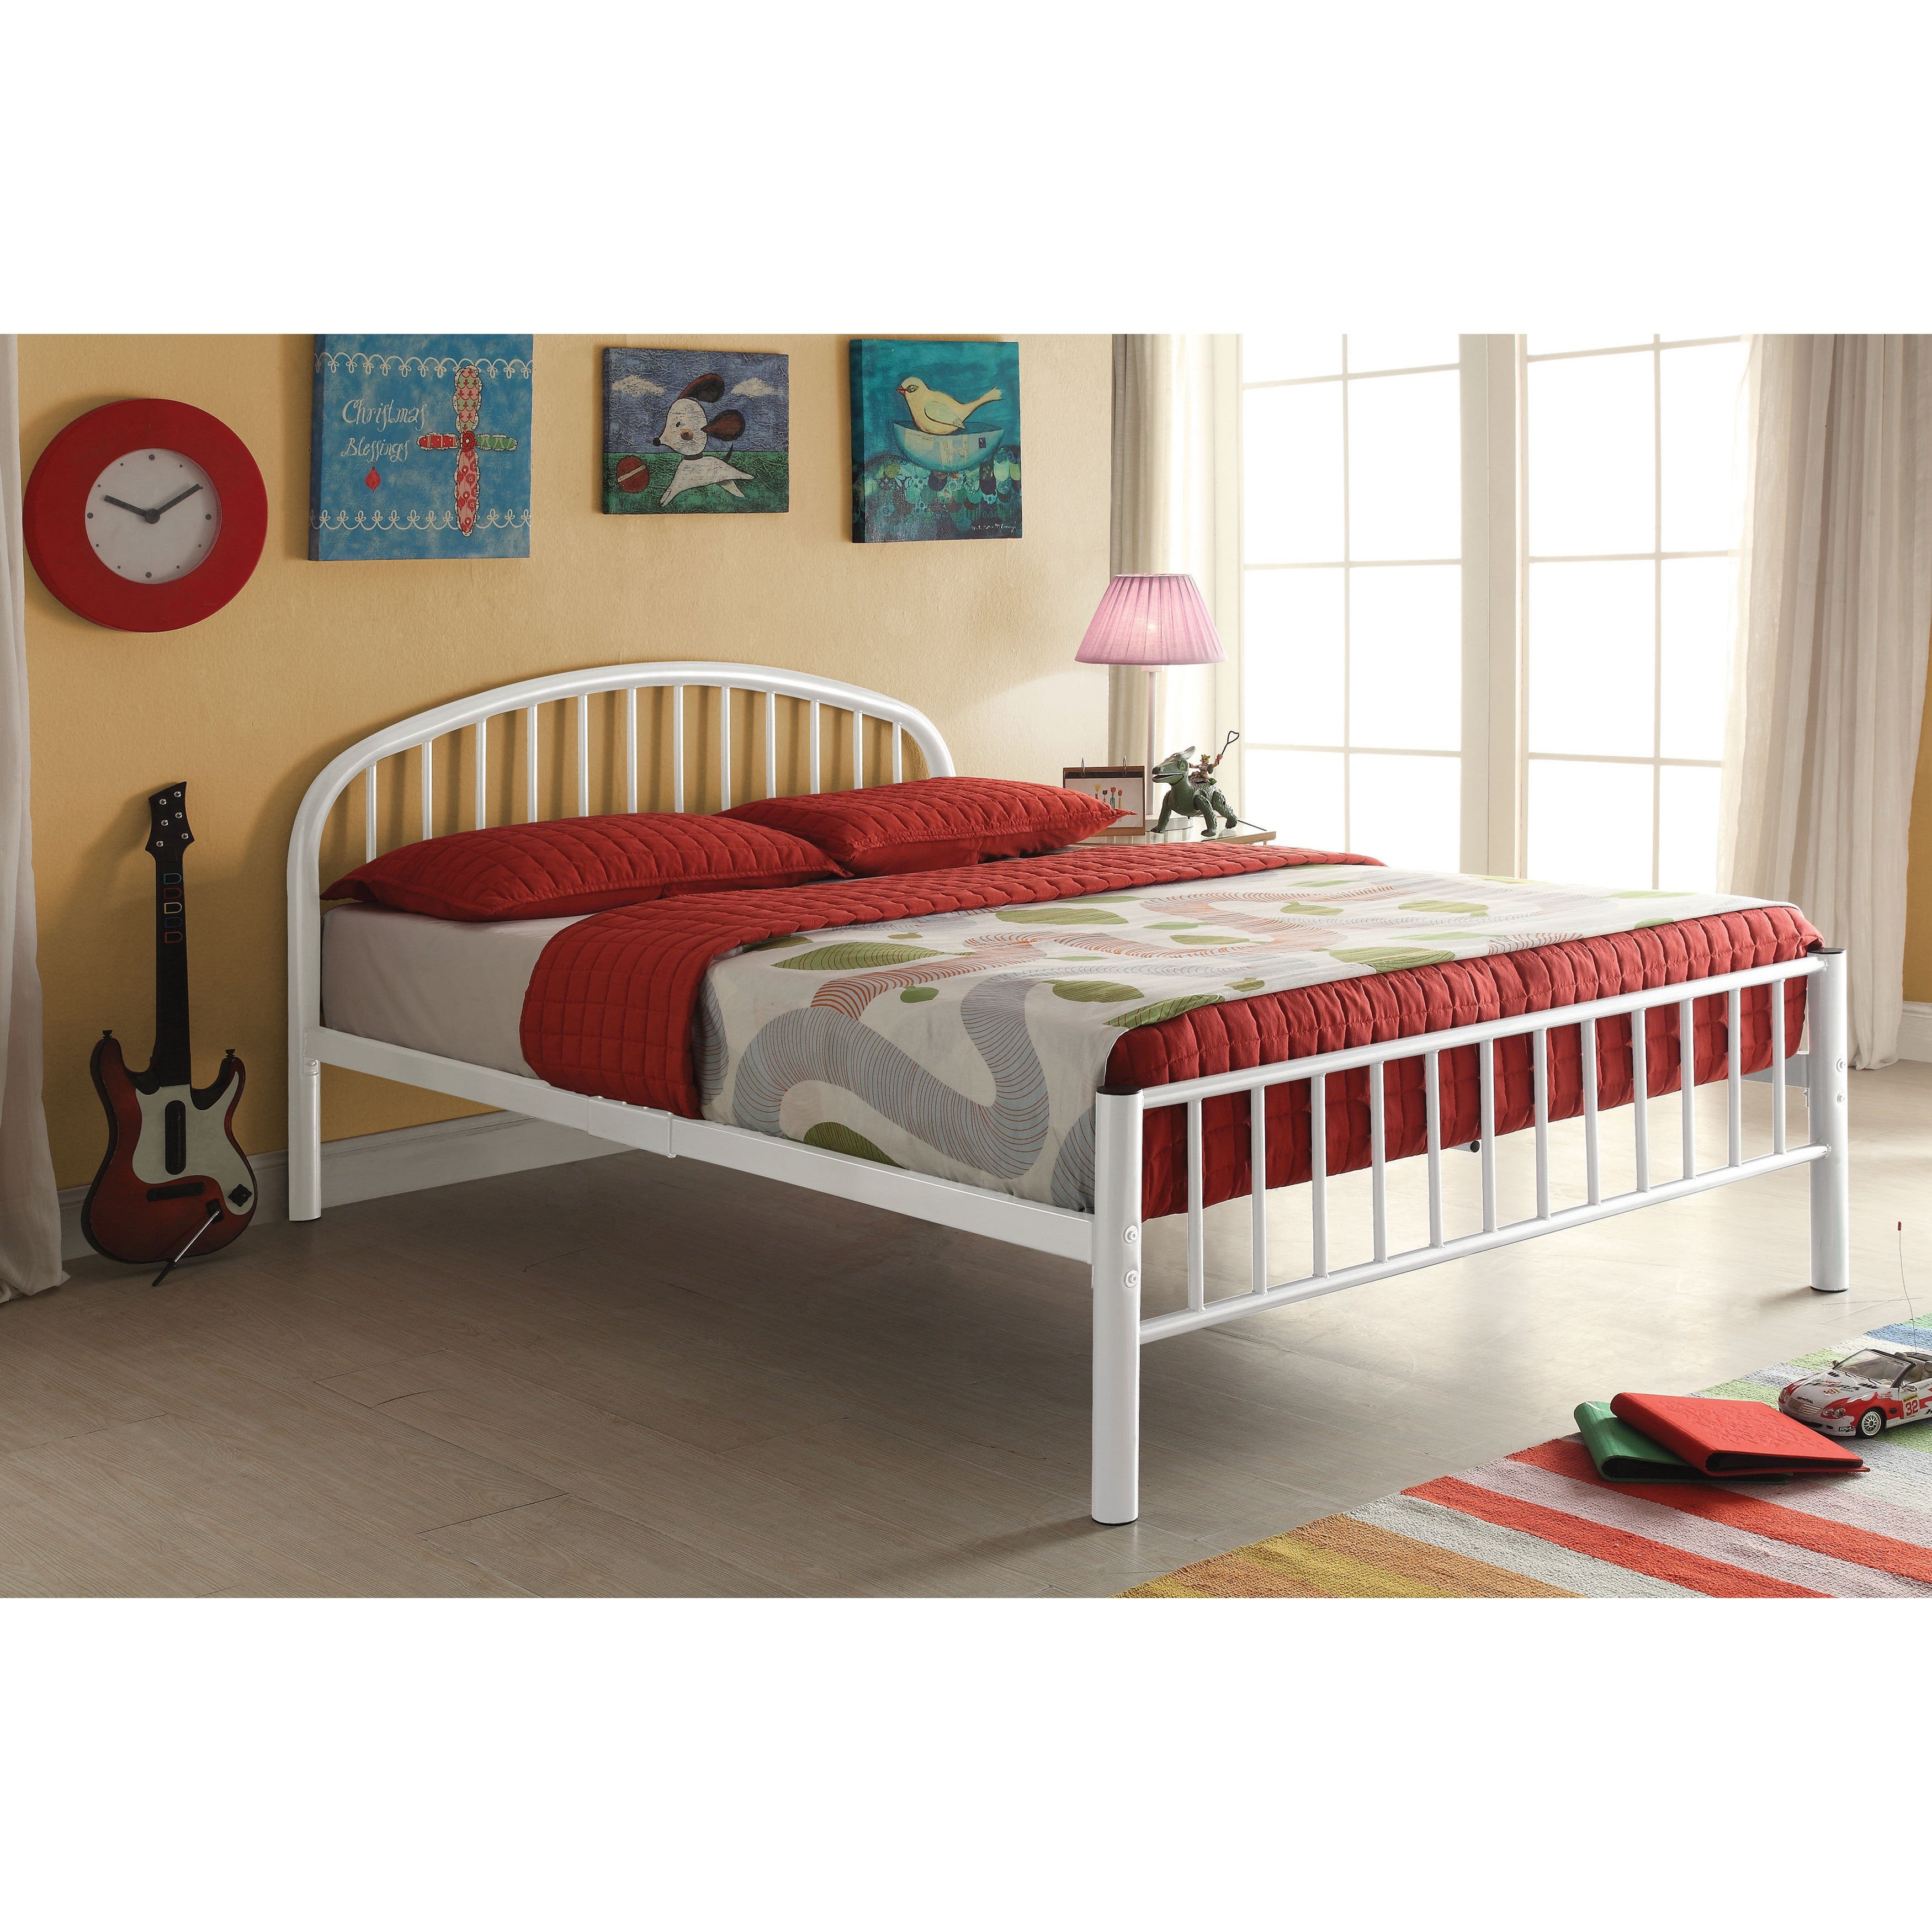 Childrens White Bedroom Furniture New Cailyn White Twin Bed